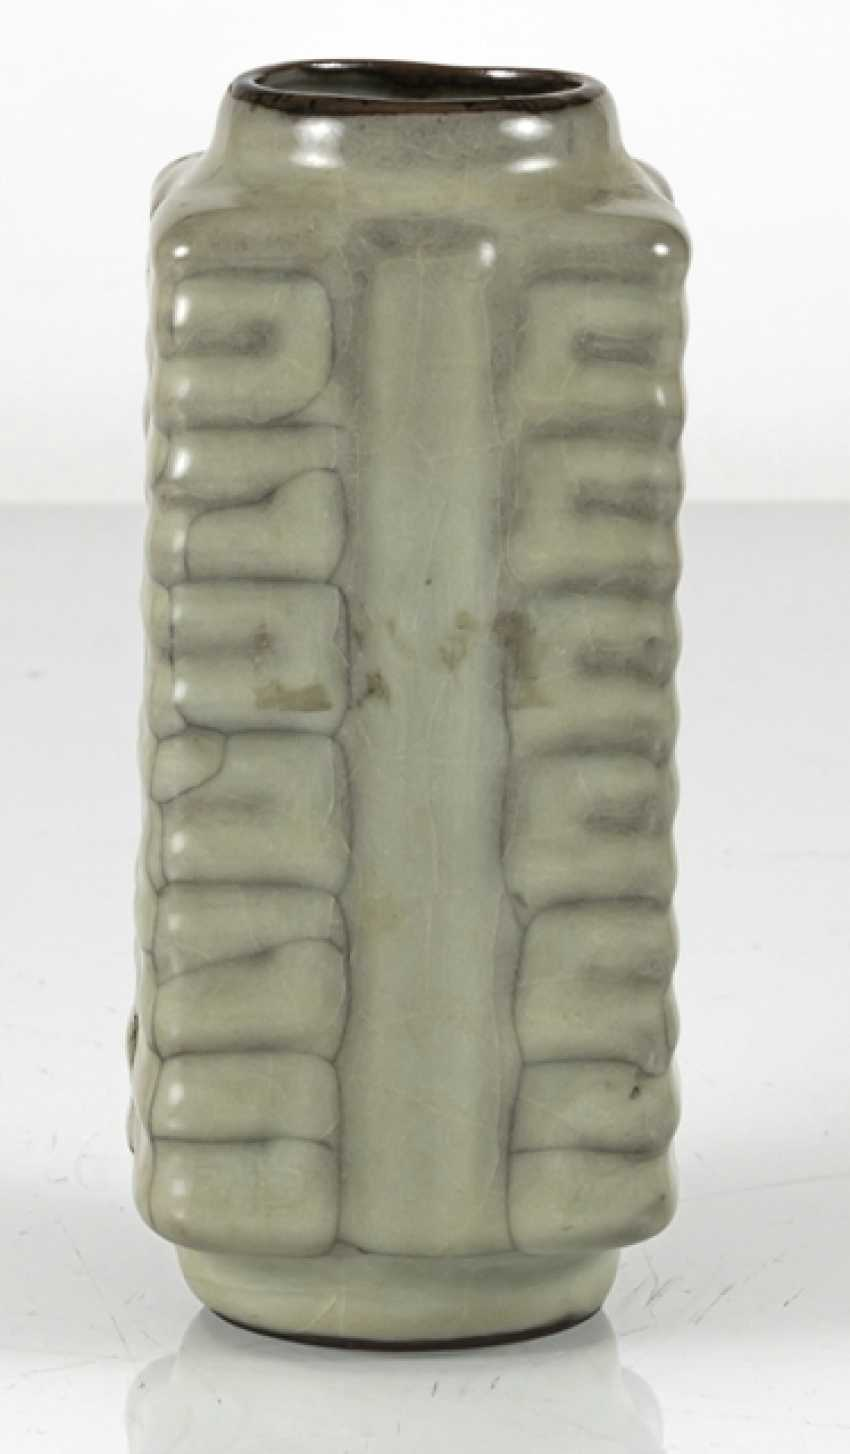 Small 'Cong'-shaped Vase with celadon glaze - photo 4